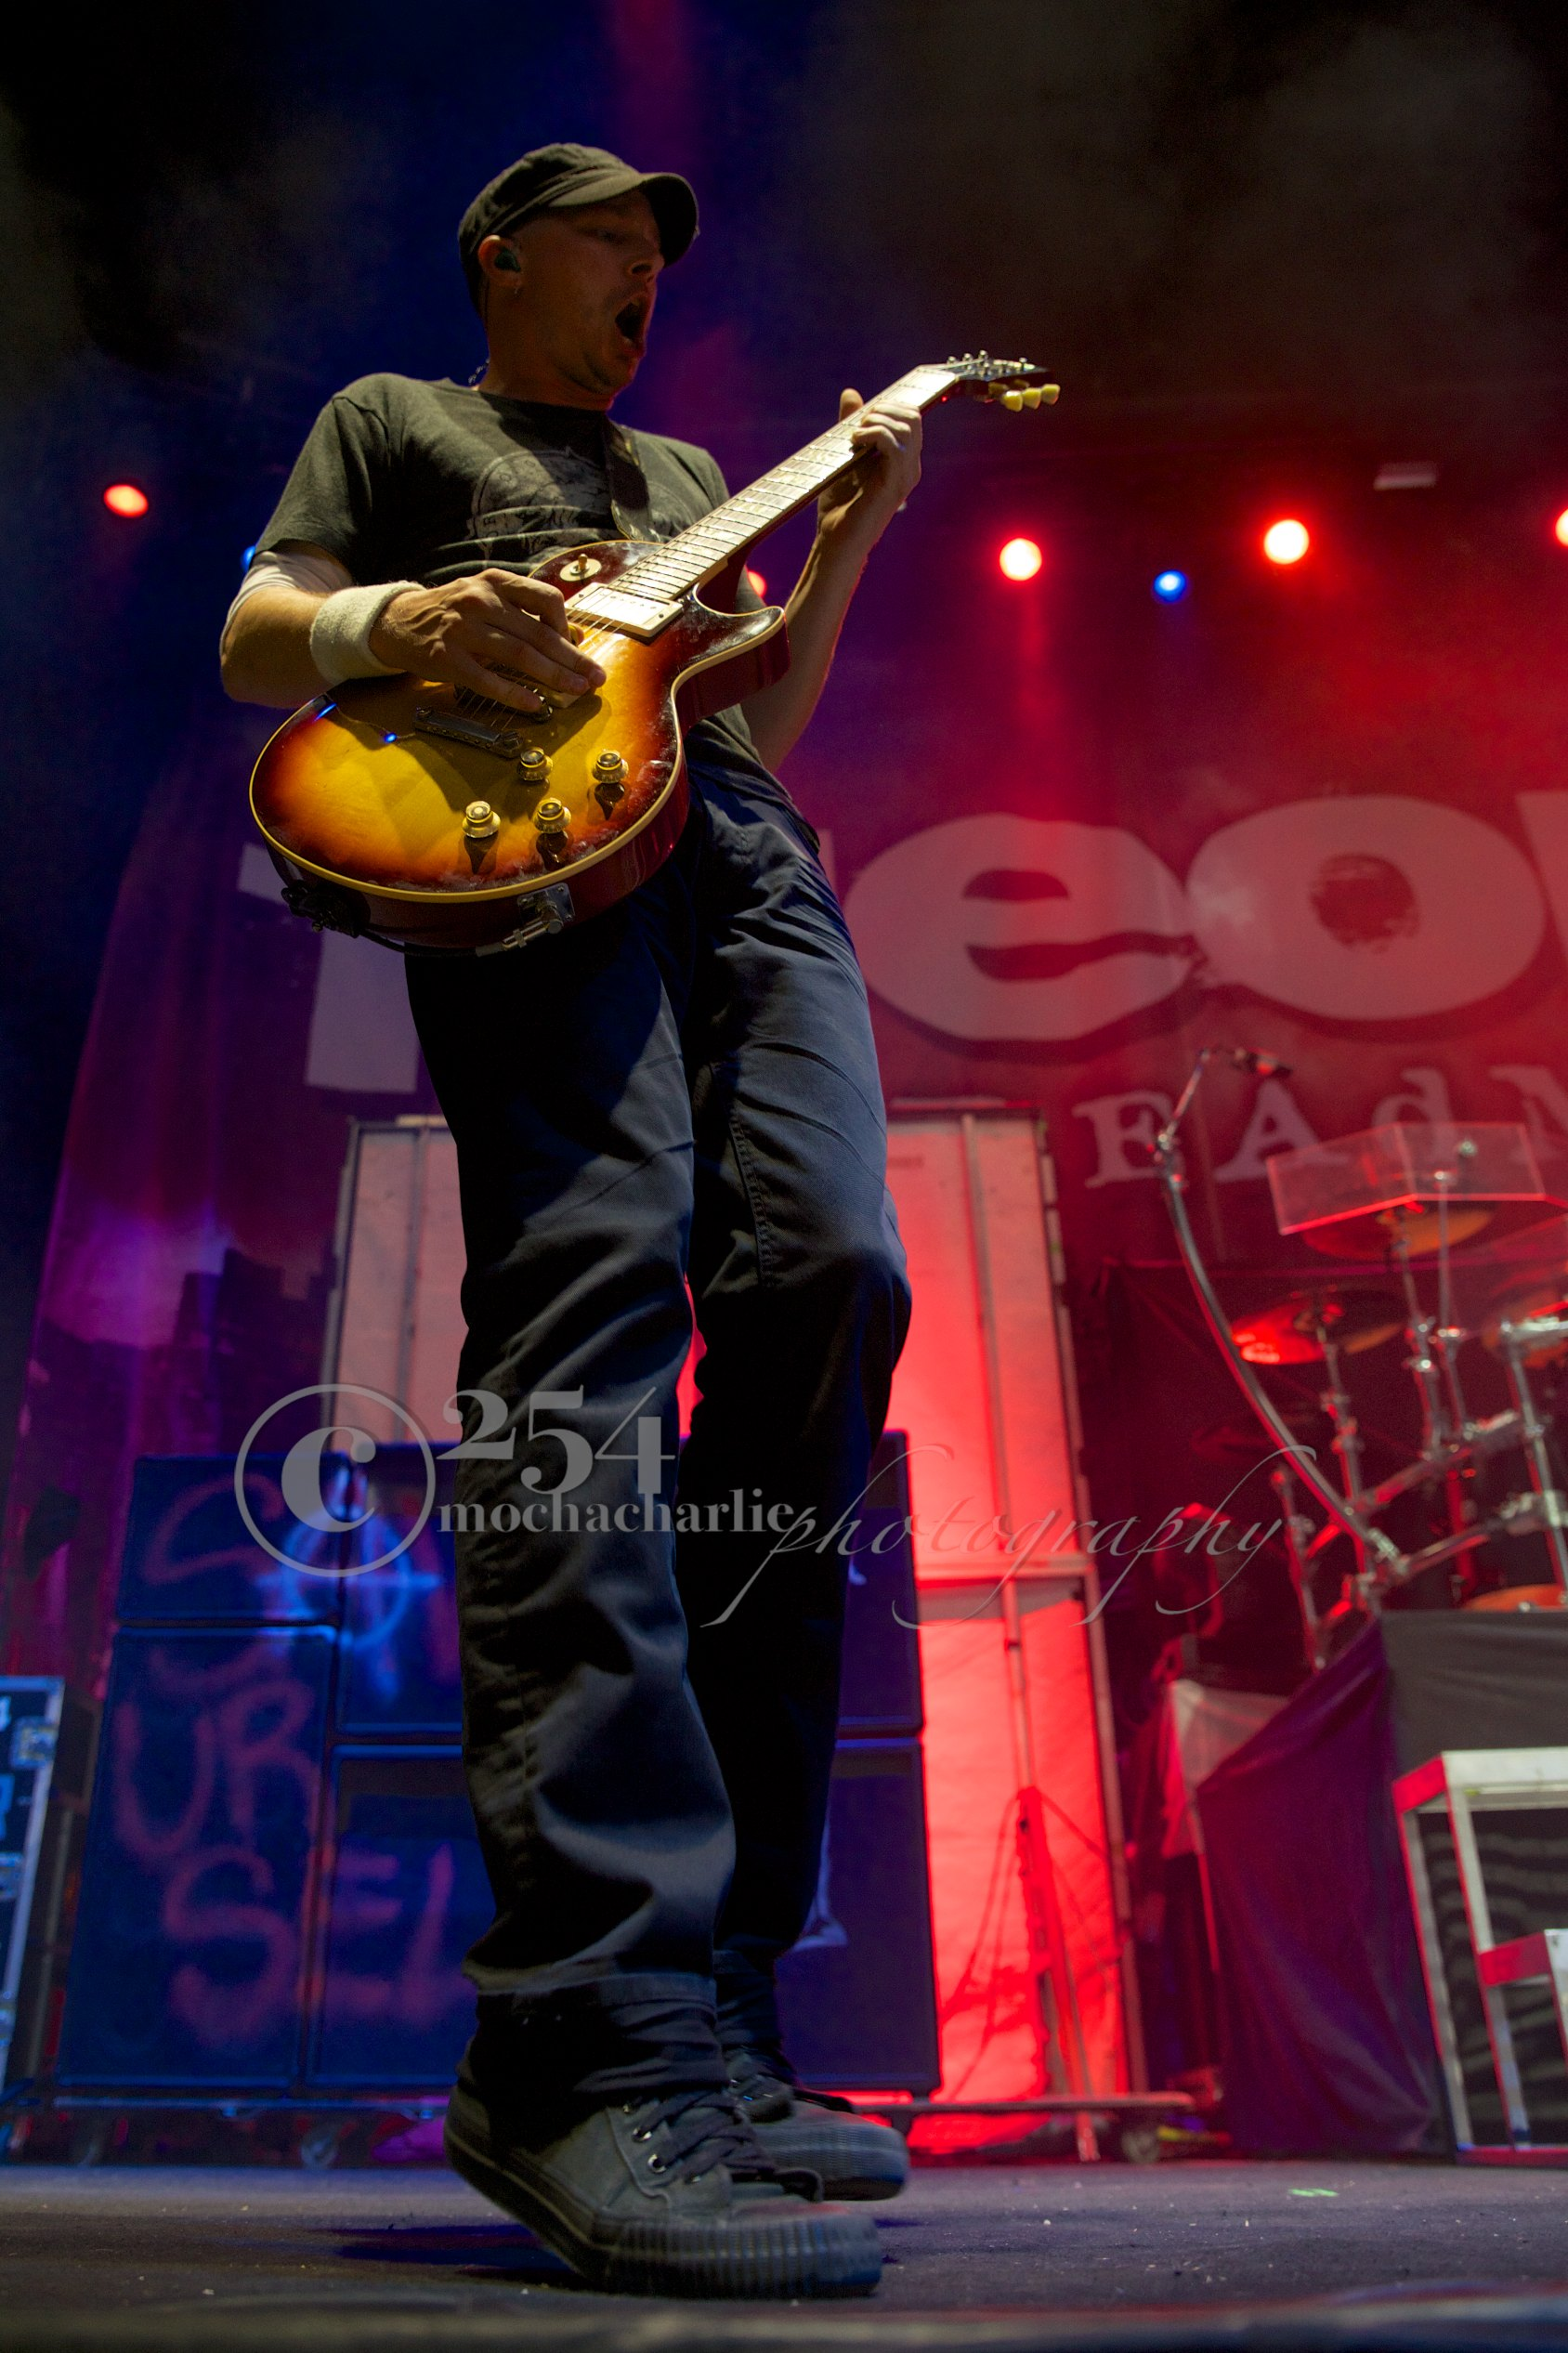 Theory of a Deadman at Uproar (Photo by Mocha Charlie)